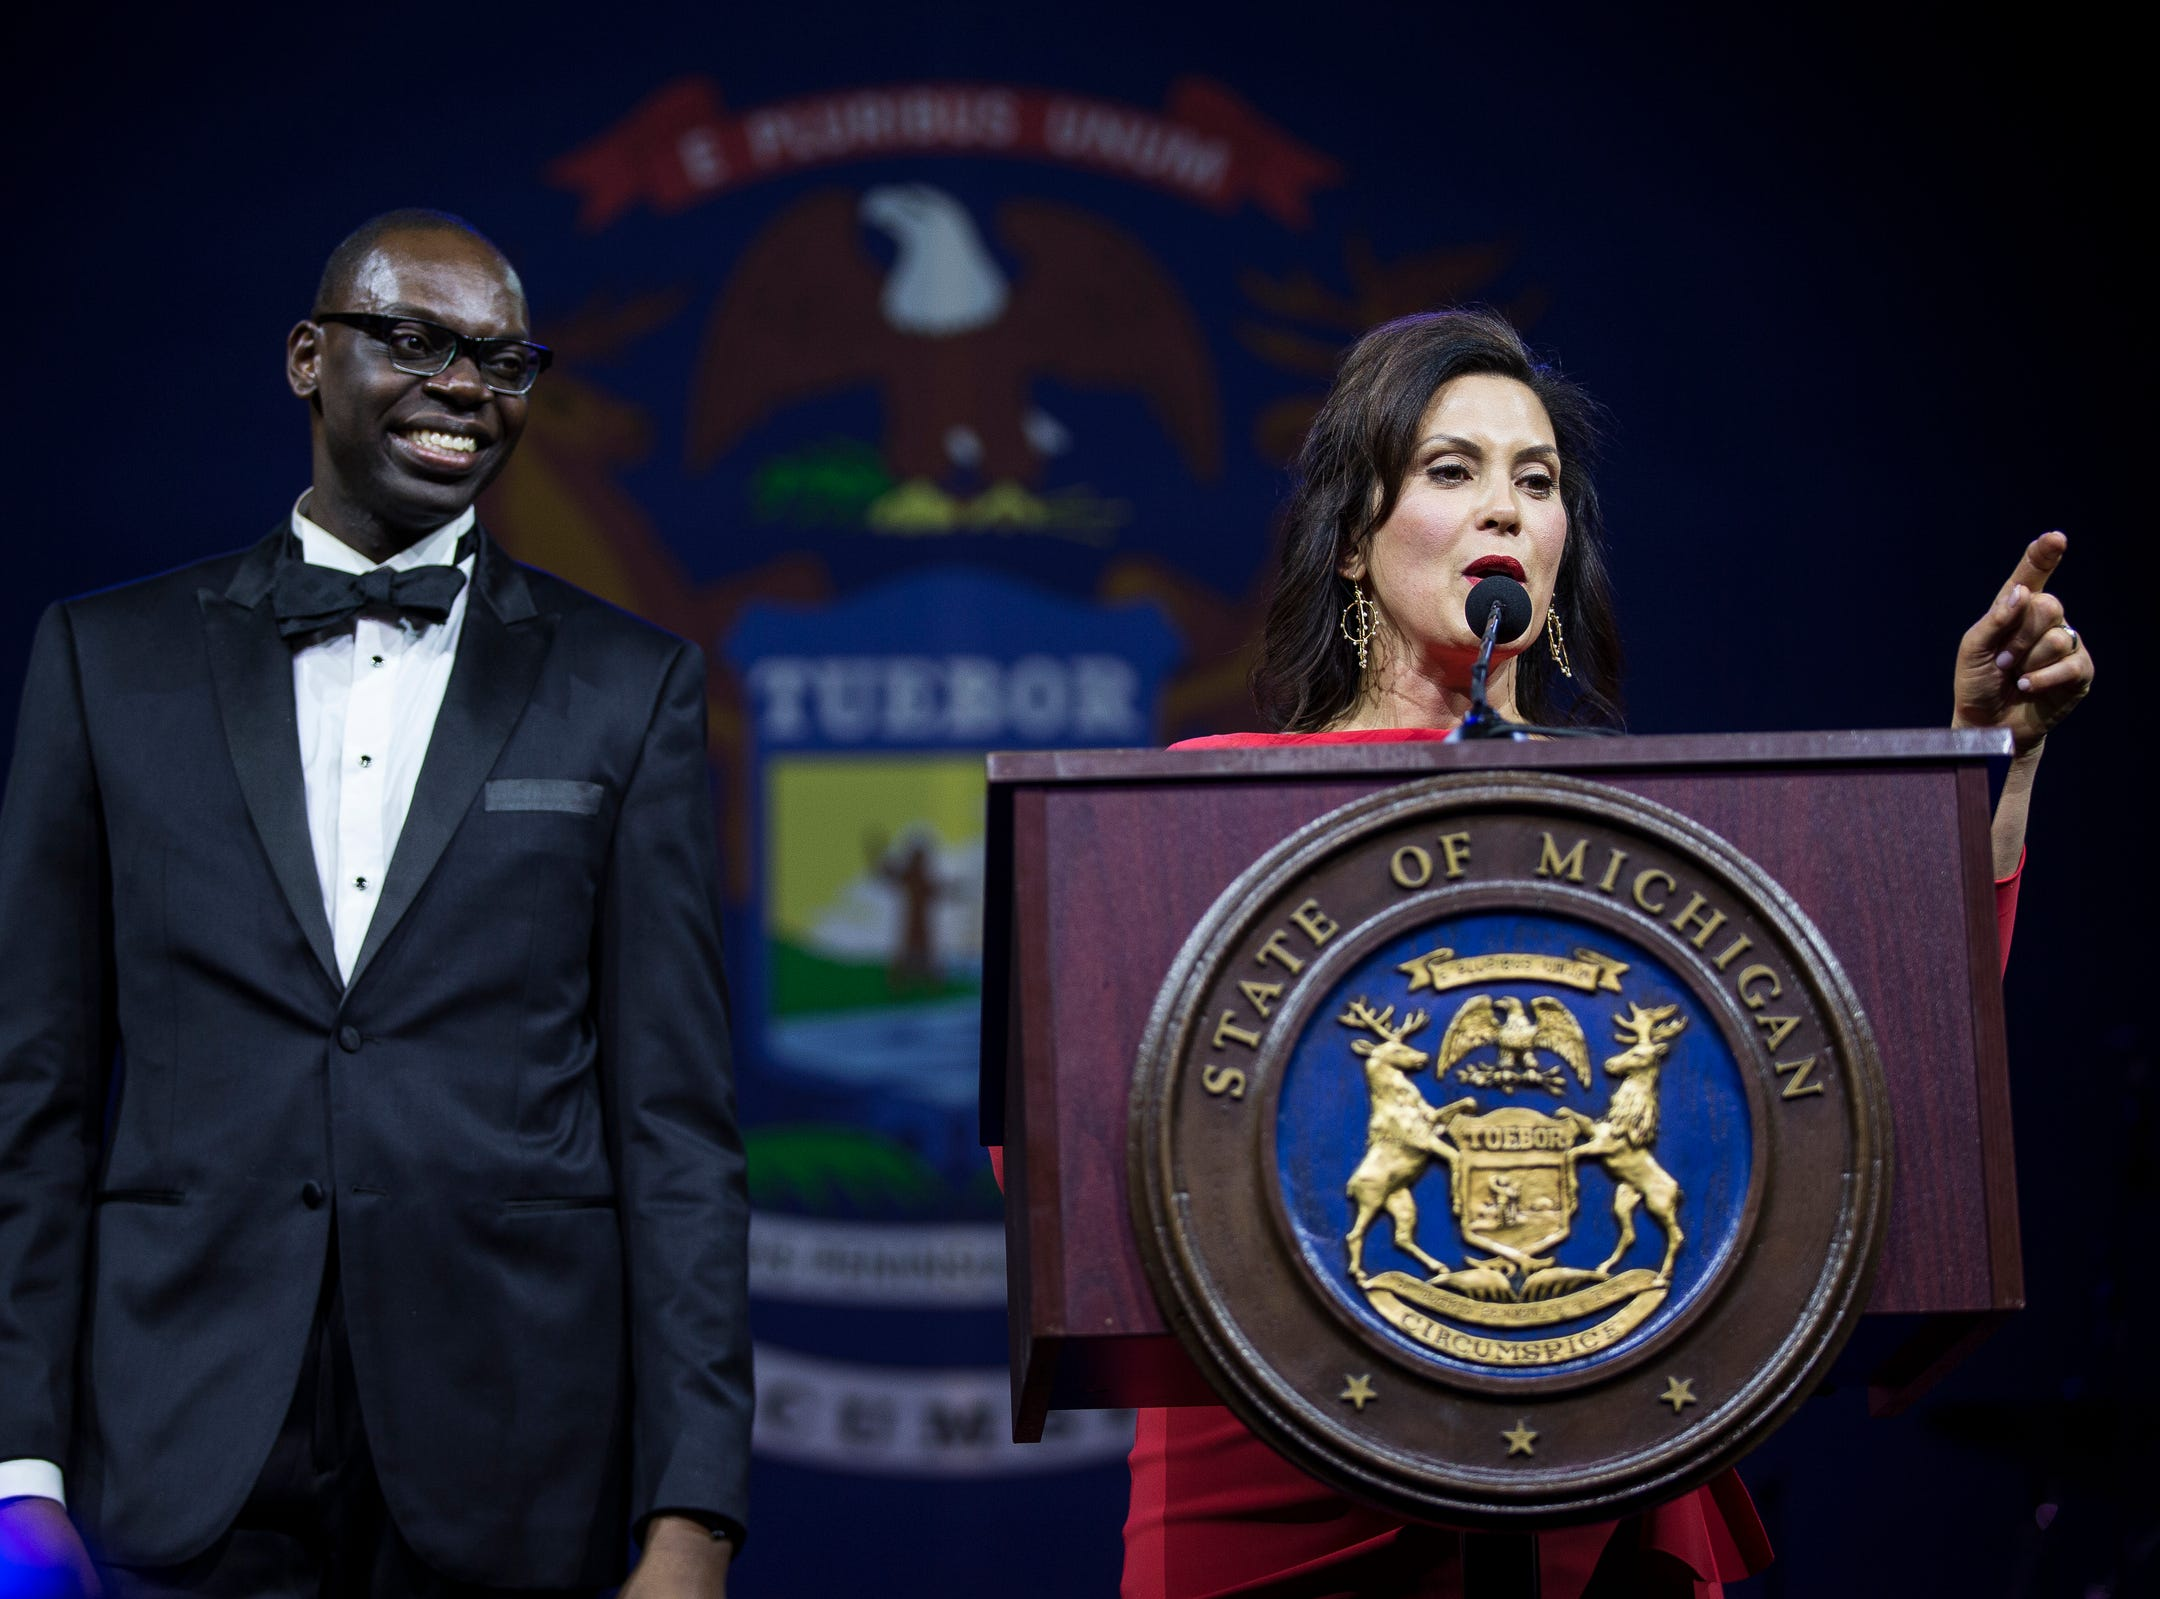 Governor Gretchen Whitmer speaks next to Lieutenant governor Garlin Gilchrist II during the inaugural ball at Cobo Center in Detroit on Tuesday, Jan. 1, 2019.